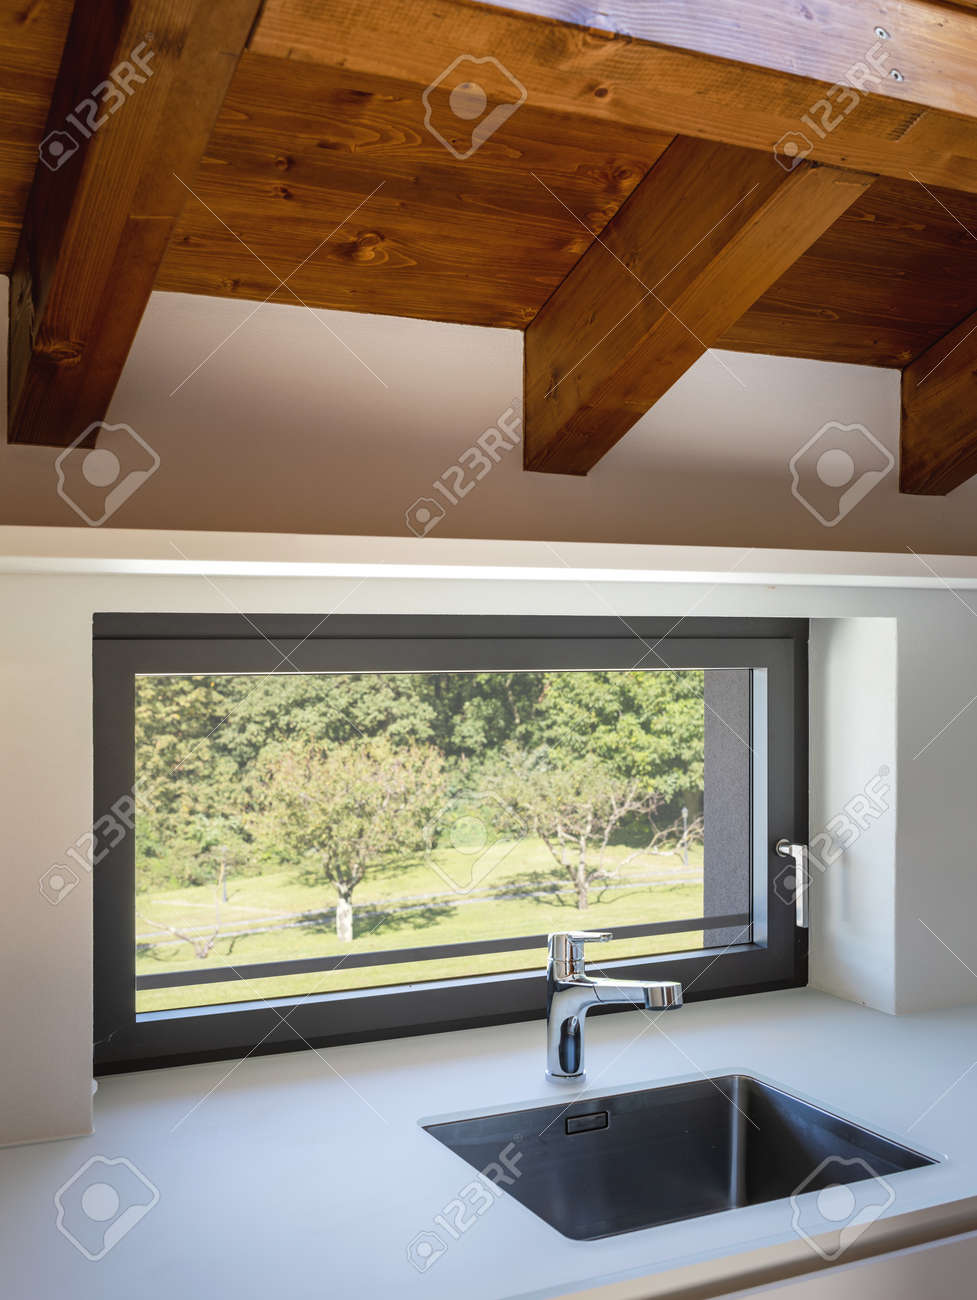 Modern white kitchen detail with steel sink and window overlooking nature. Natural light - 167299064